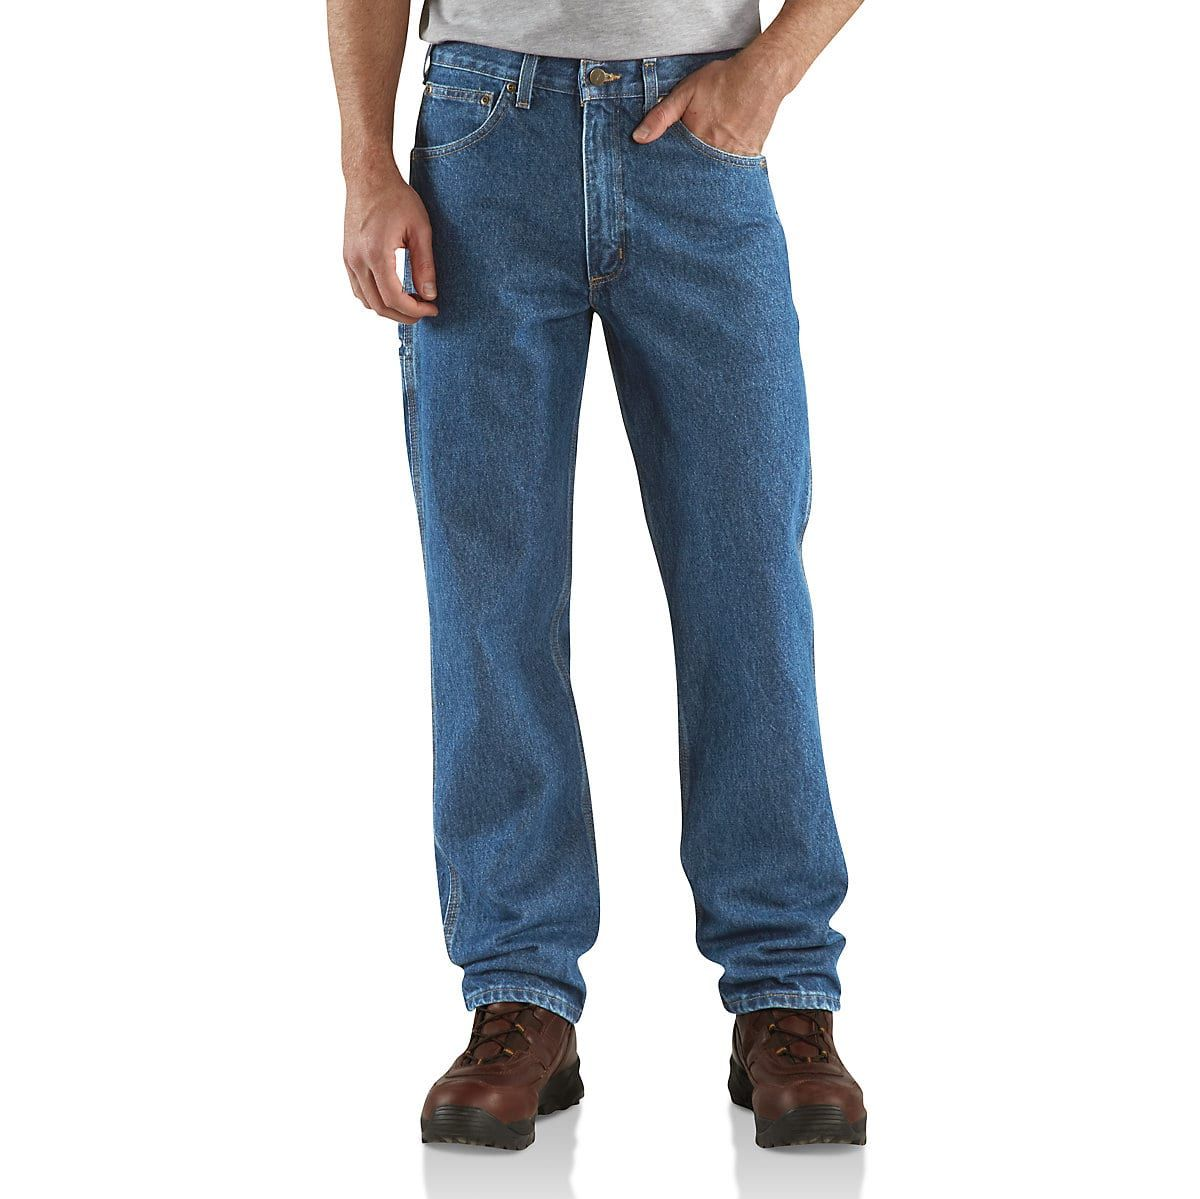 Shop The Relaxed Fit Carpenter Jean For Men S At Carhartt Com For Men S Pants That Works As Hard As Yo Carpenter Jeans Carhartt Carpenter Jeans Loose Fit Jeans